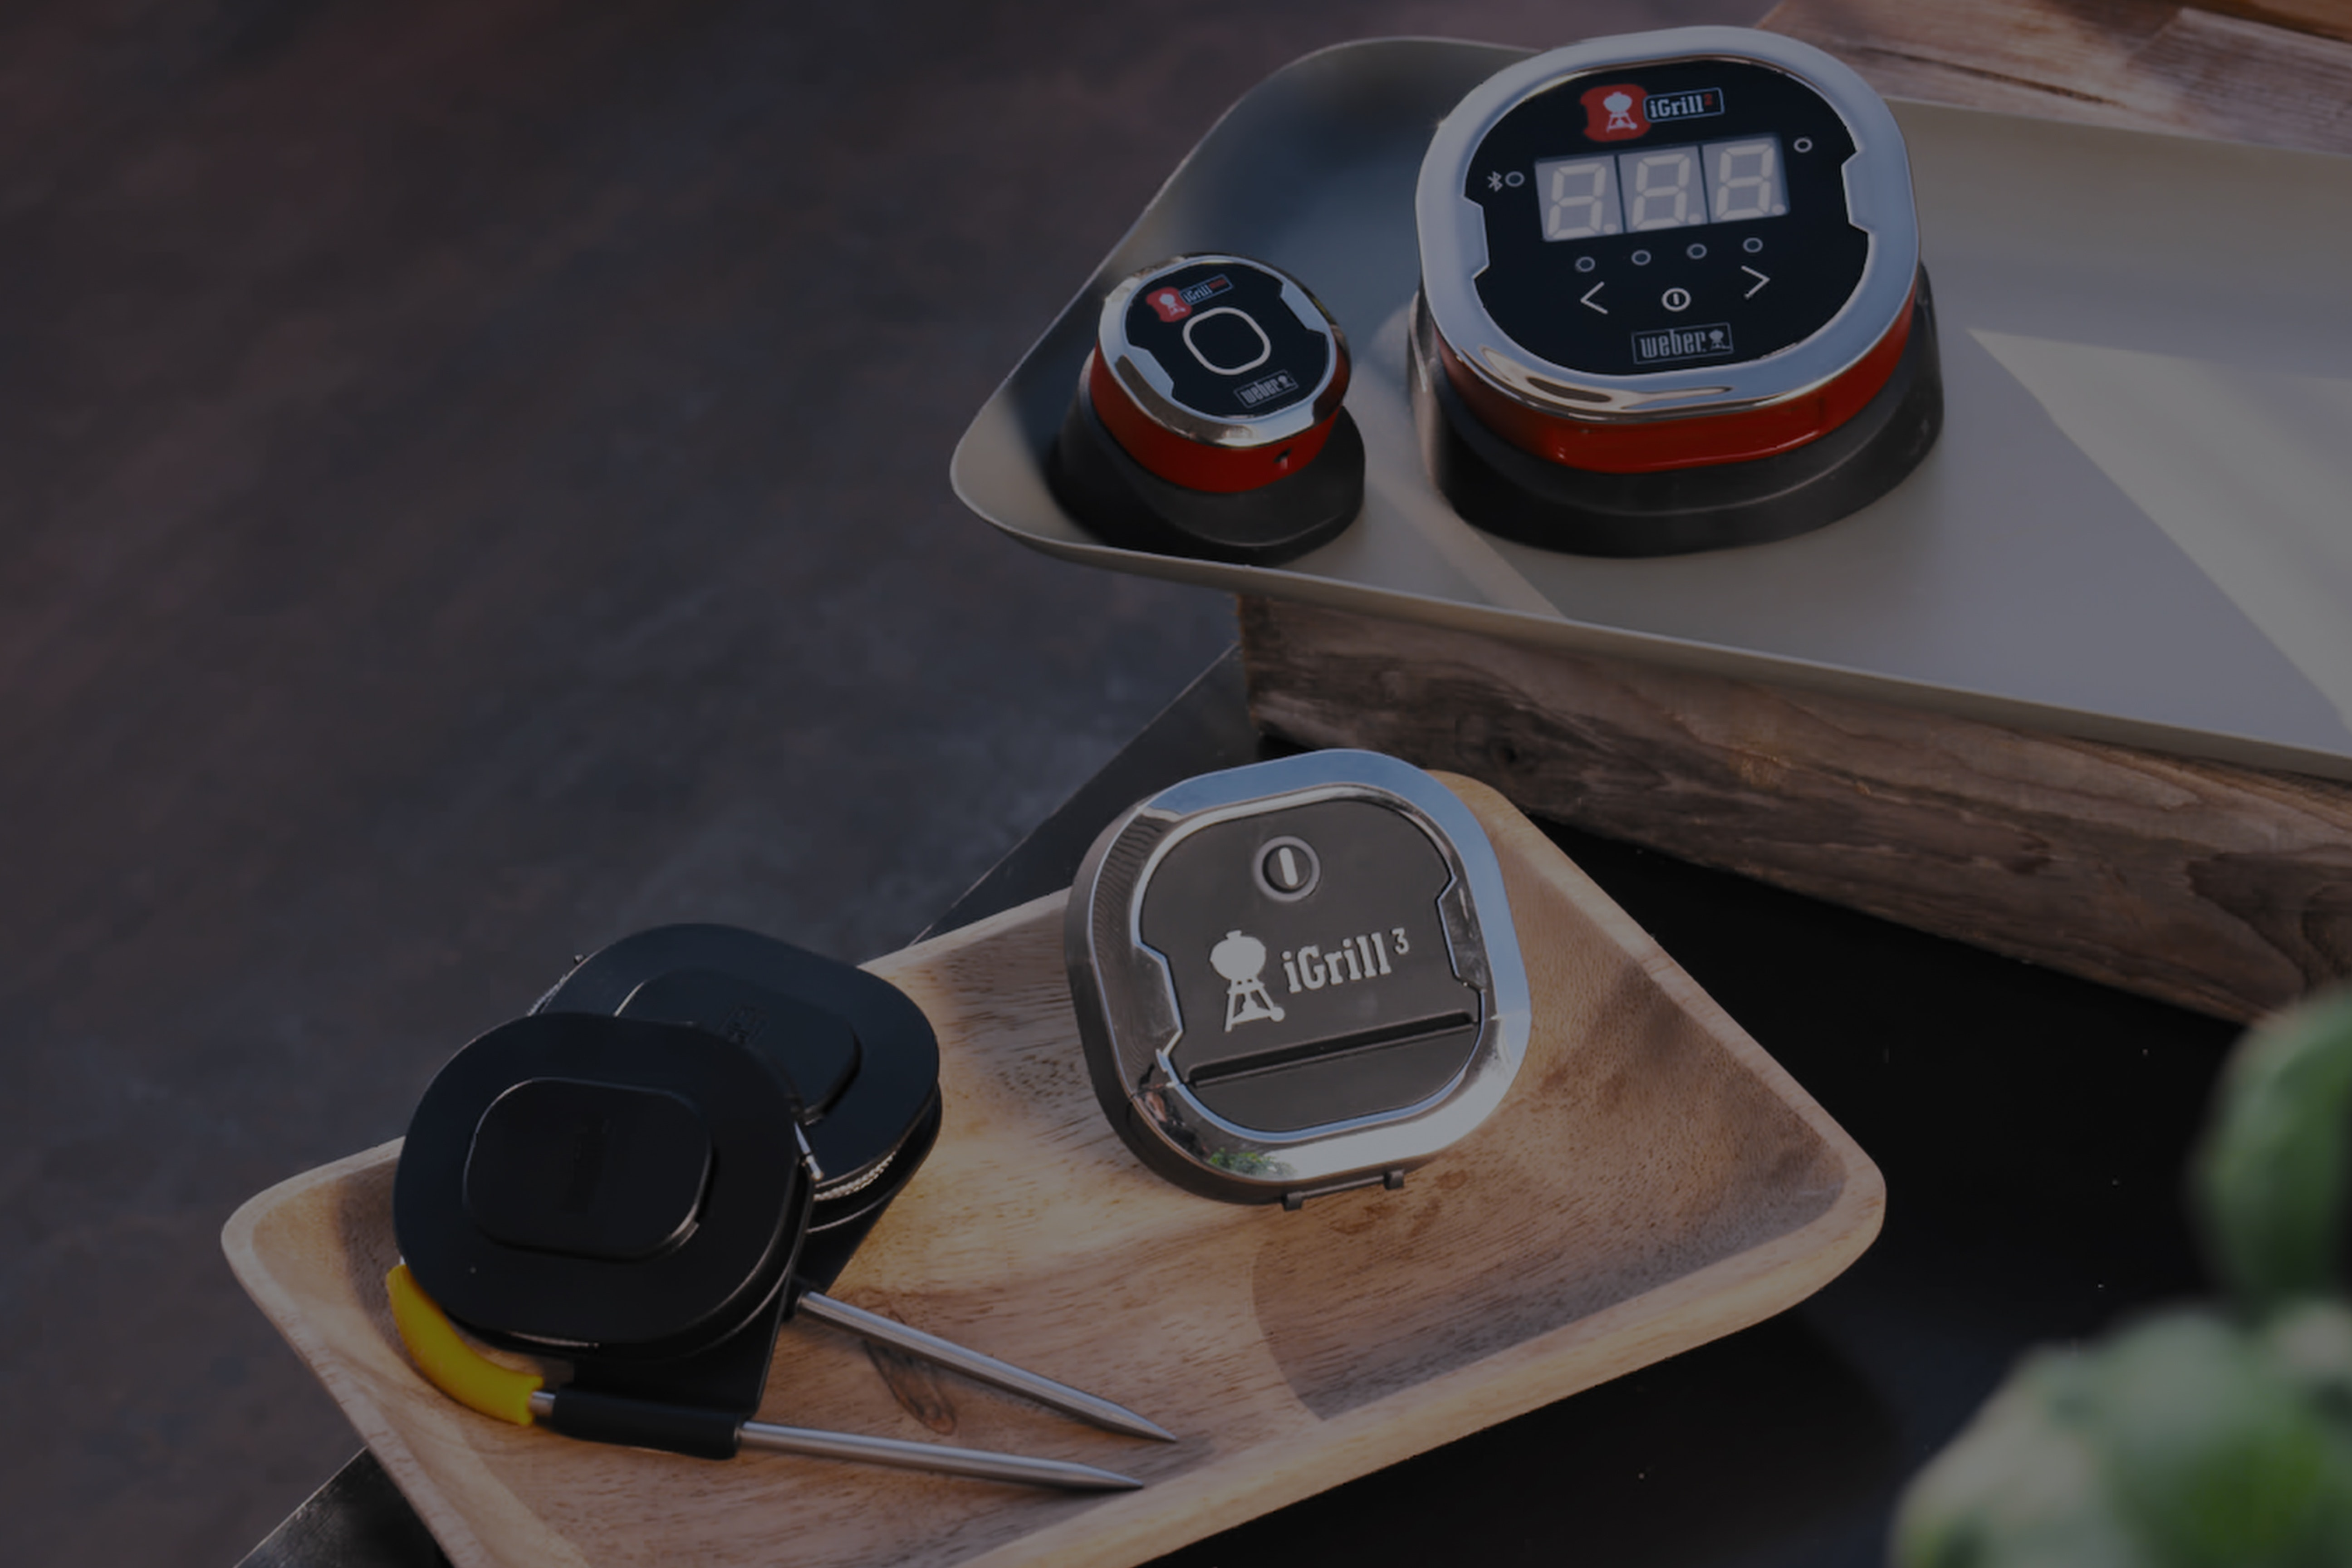 IGRILL APP-CONNECTED THERMOMETERS